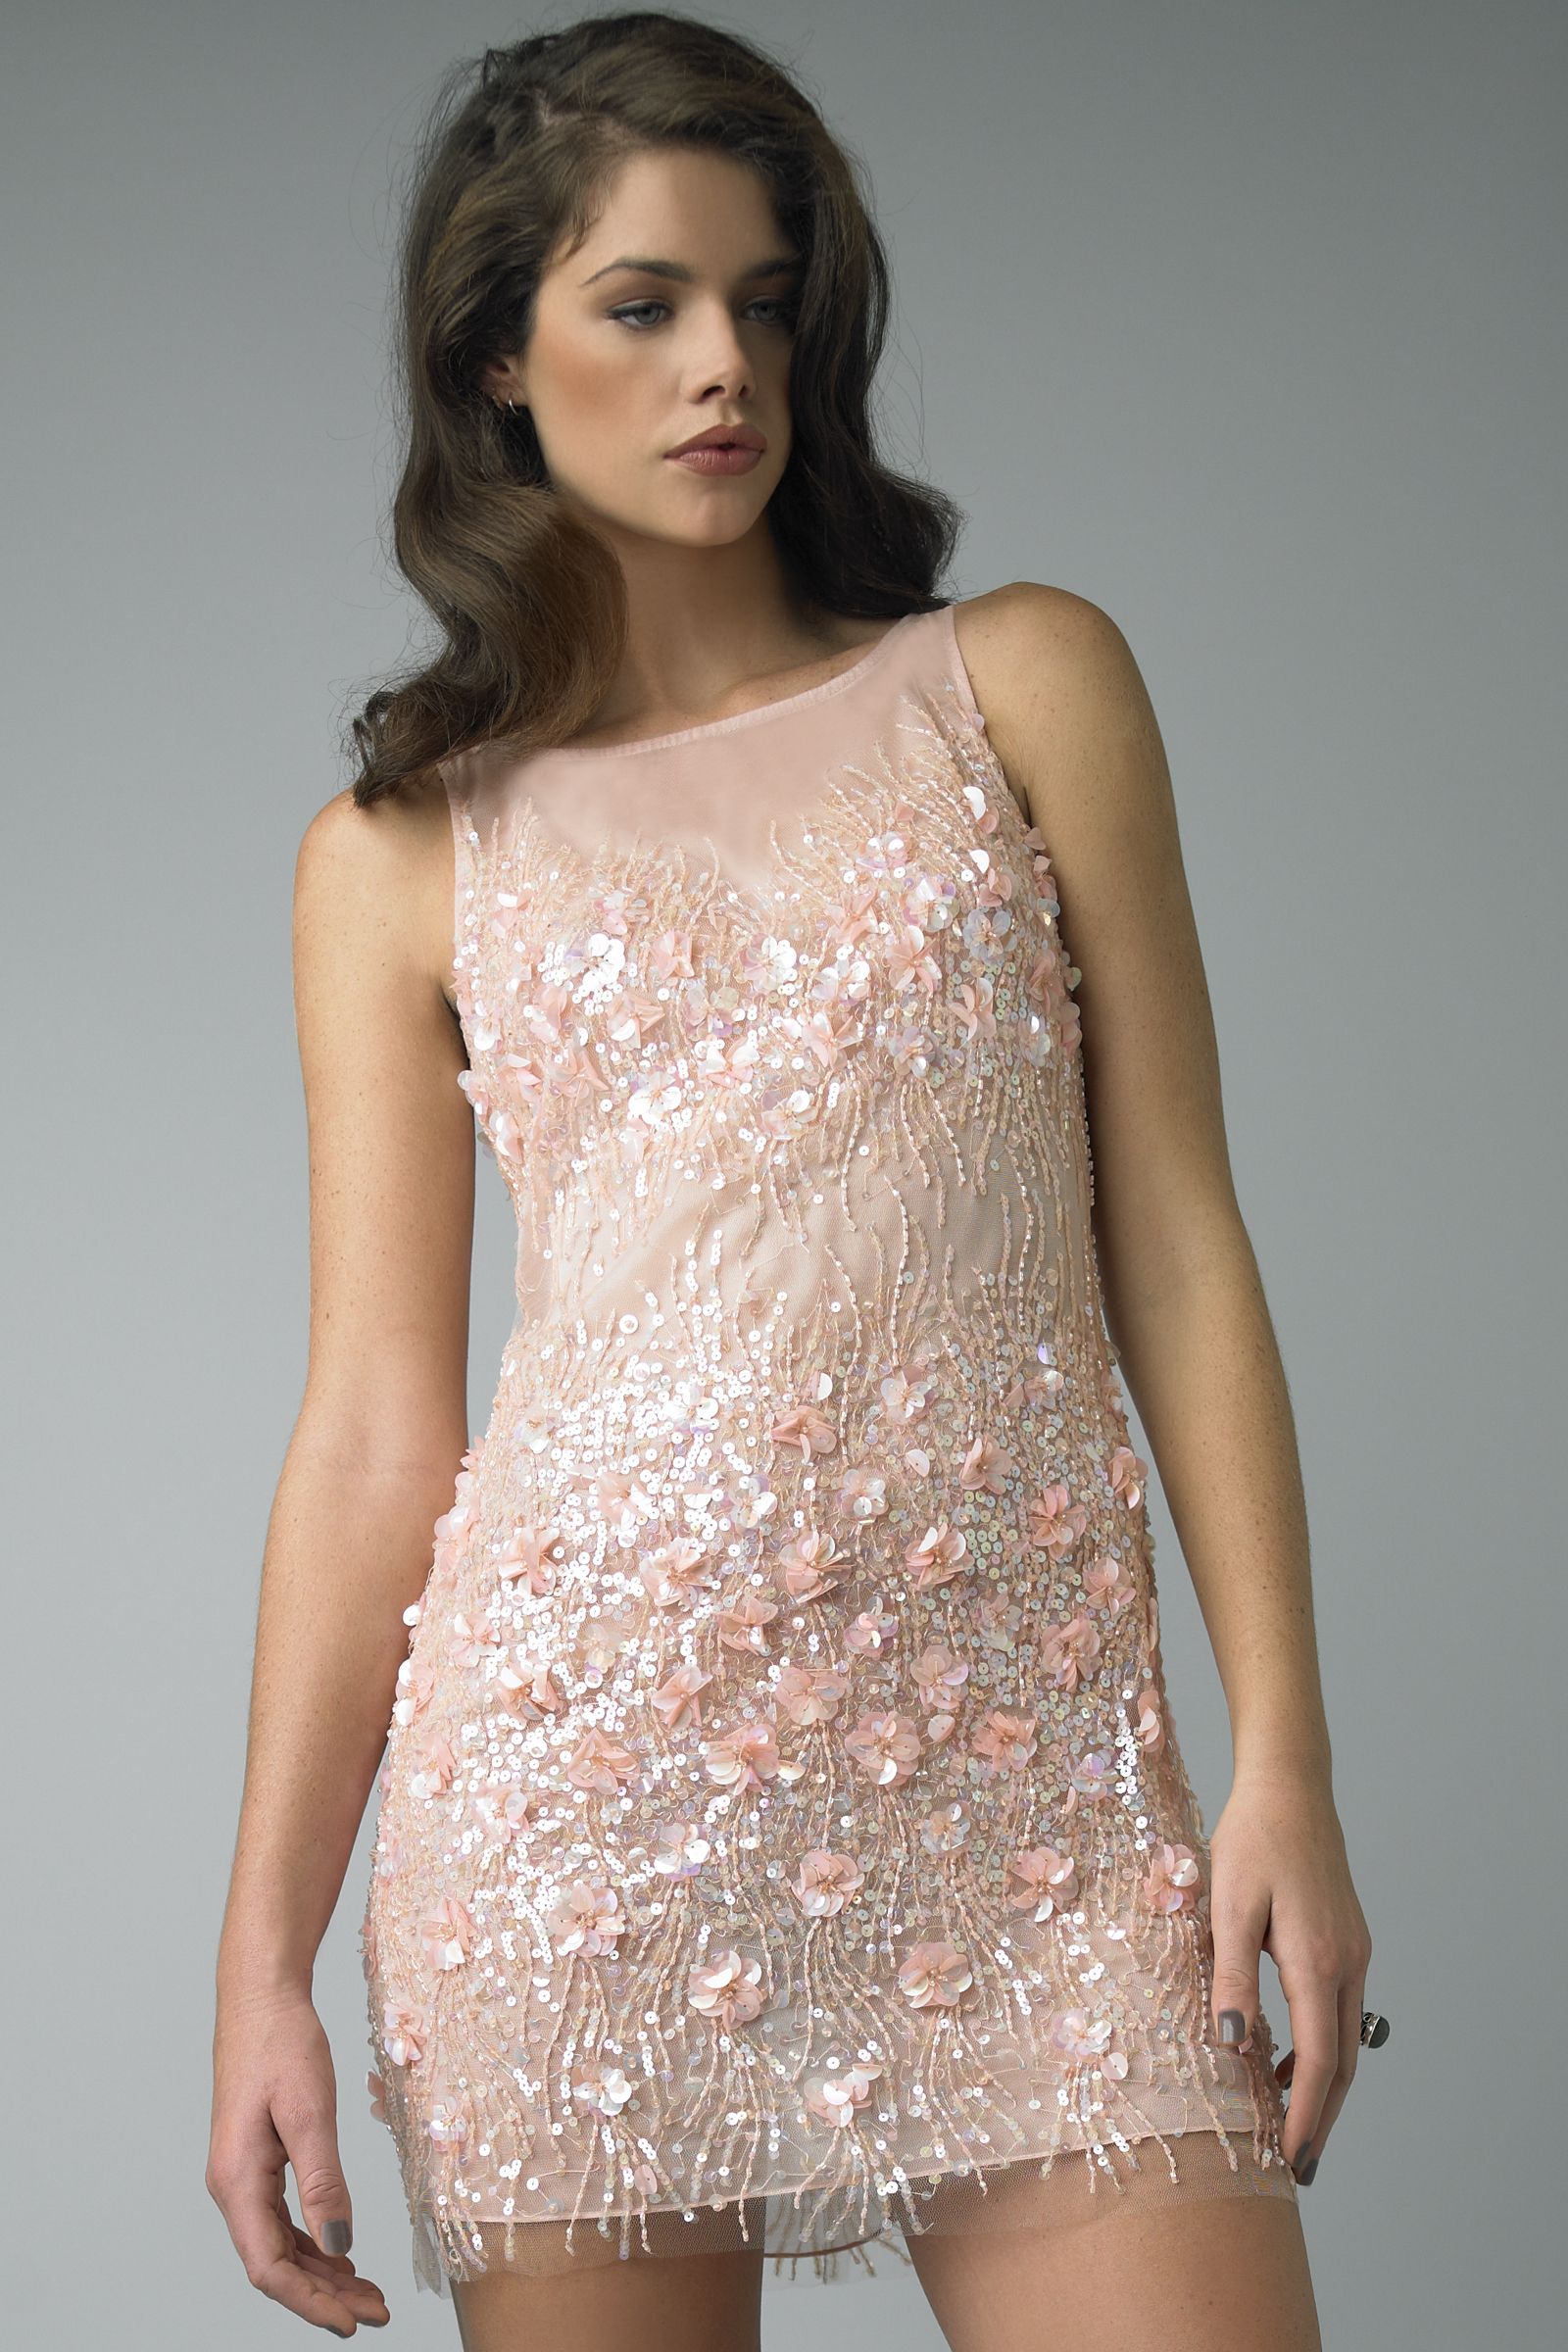 Sequined Nude Cocktail Dress With Nude Elements and Tulle ...